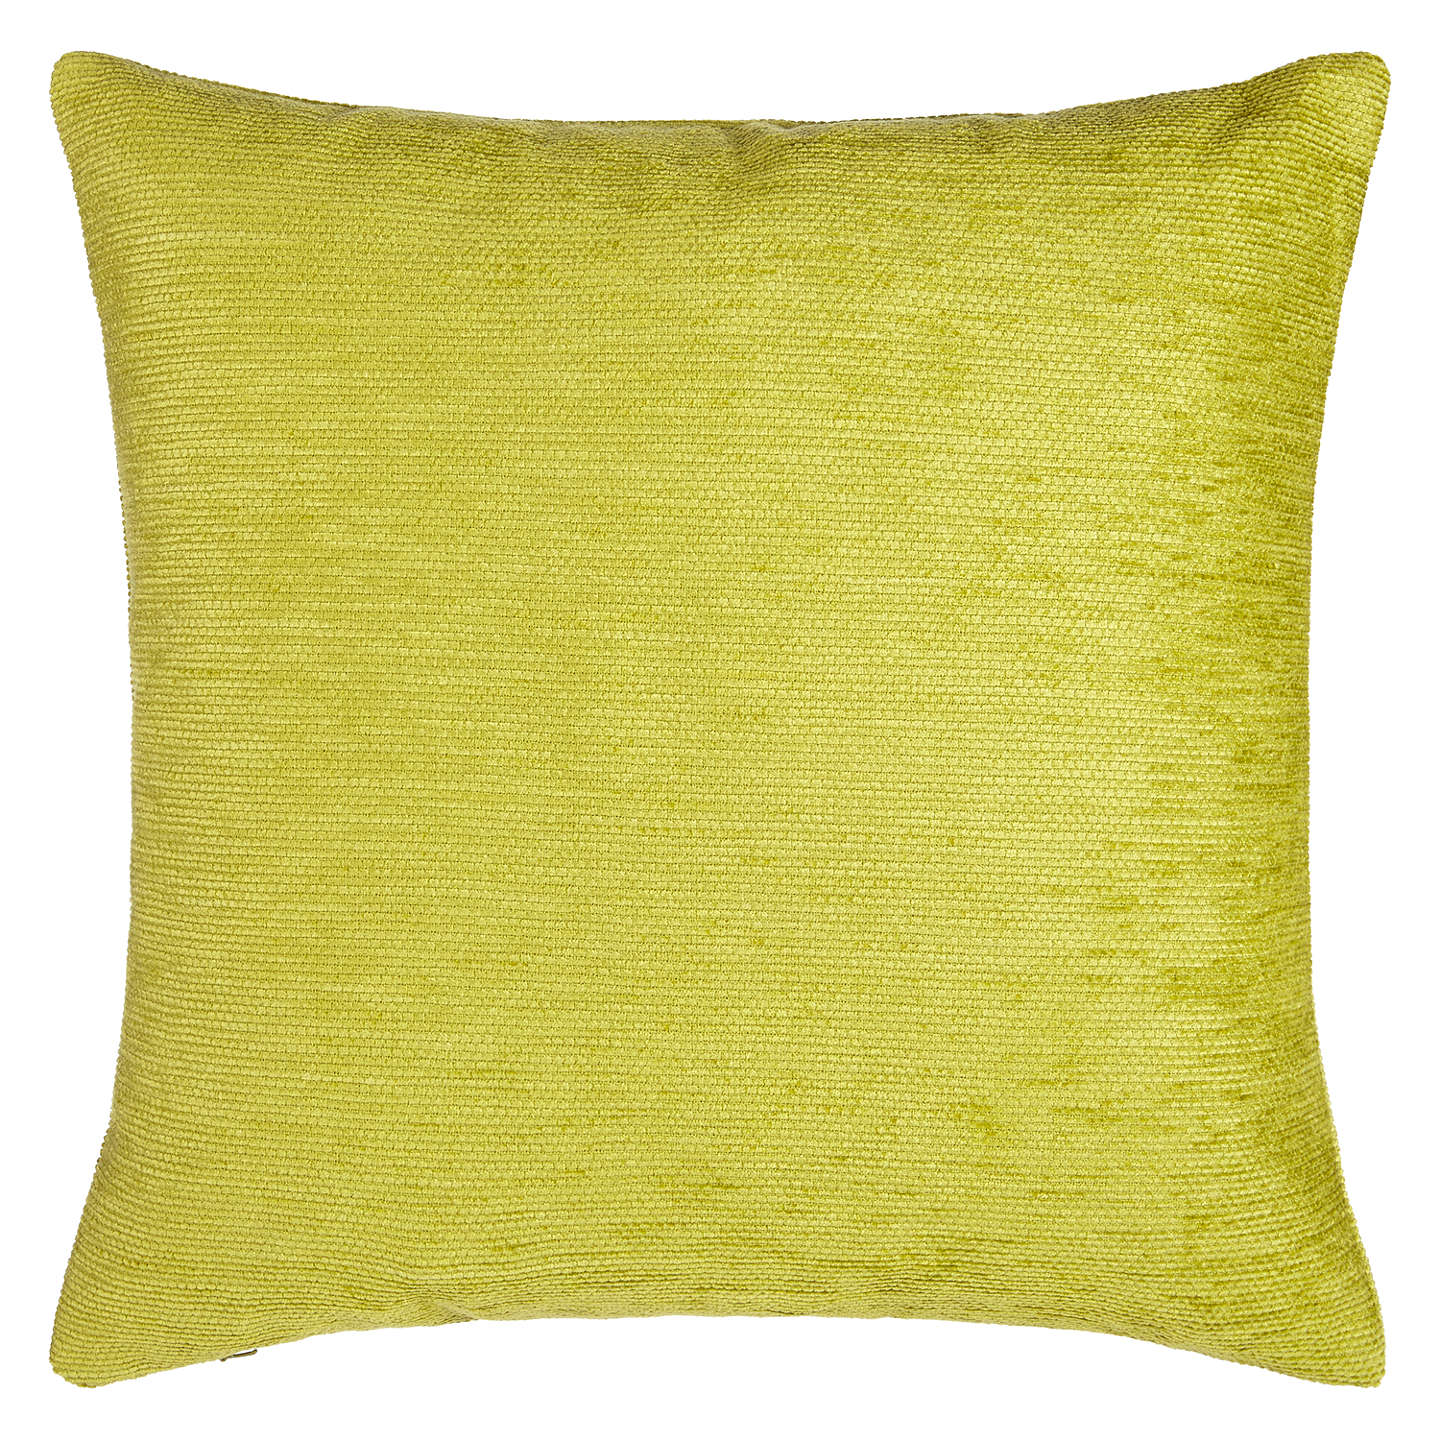 BuyJohn Lewis Zambezi Cushion, Catkin Online at johnlewis.com